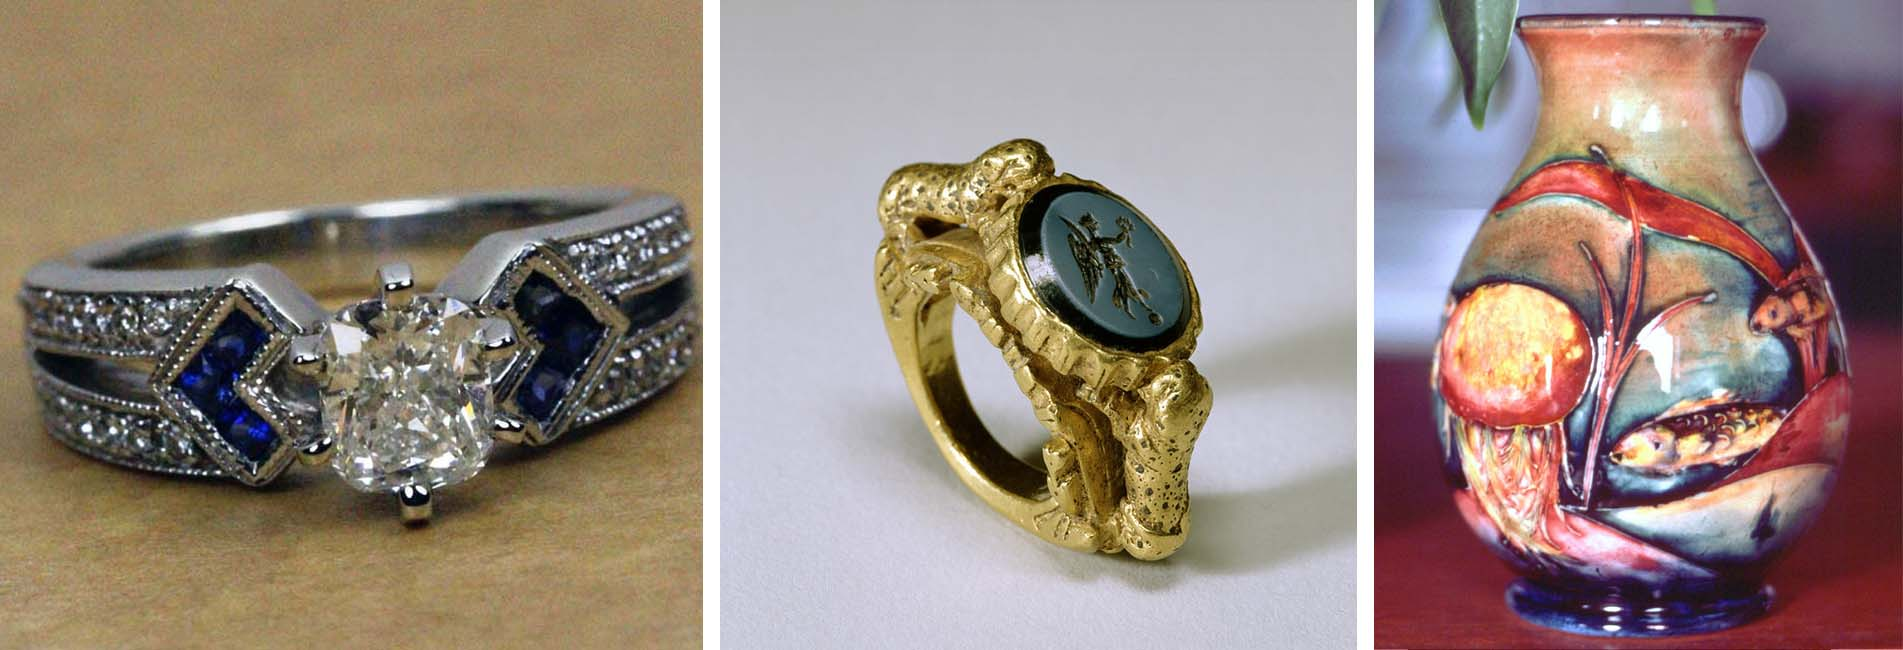 Antique Rings Maitland, Antique Jewellery Newcastle, Antiques Morpeth, Moorcroft Lake Macquarie, Marcasite Pokolbin